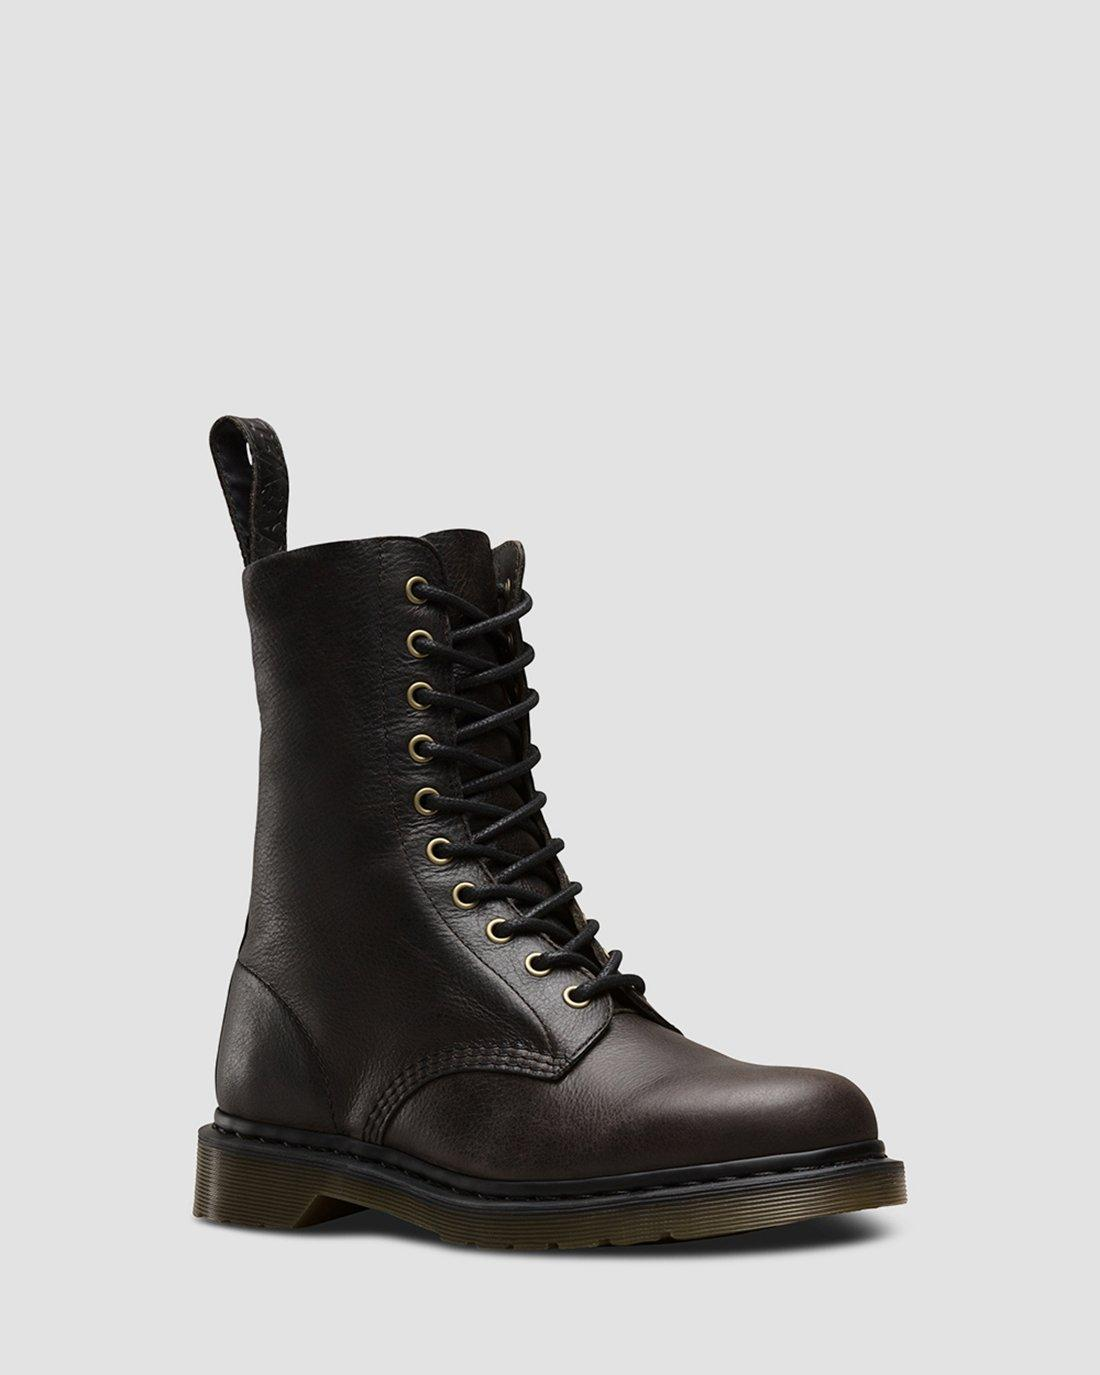 1490 SMOOTH | Dr. Martens Italia